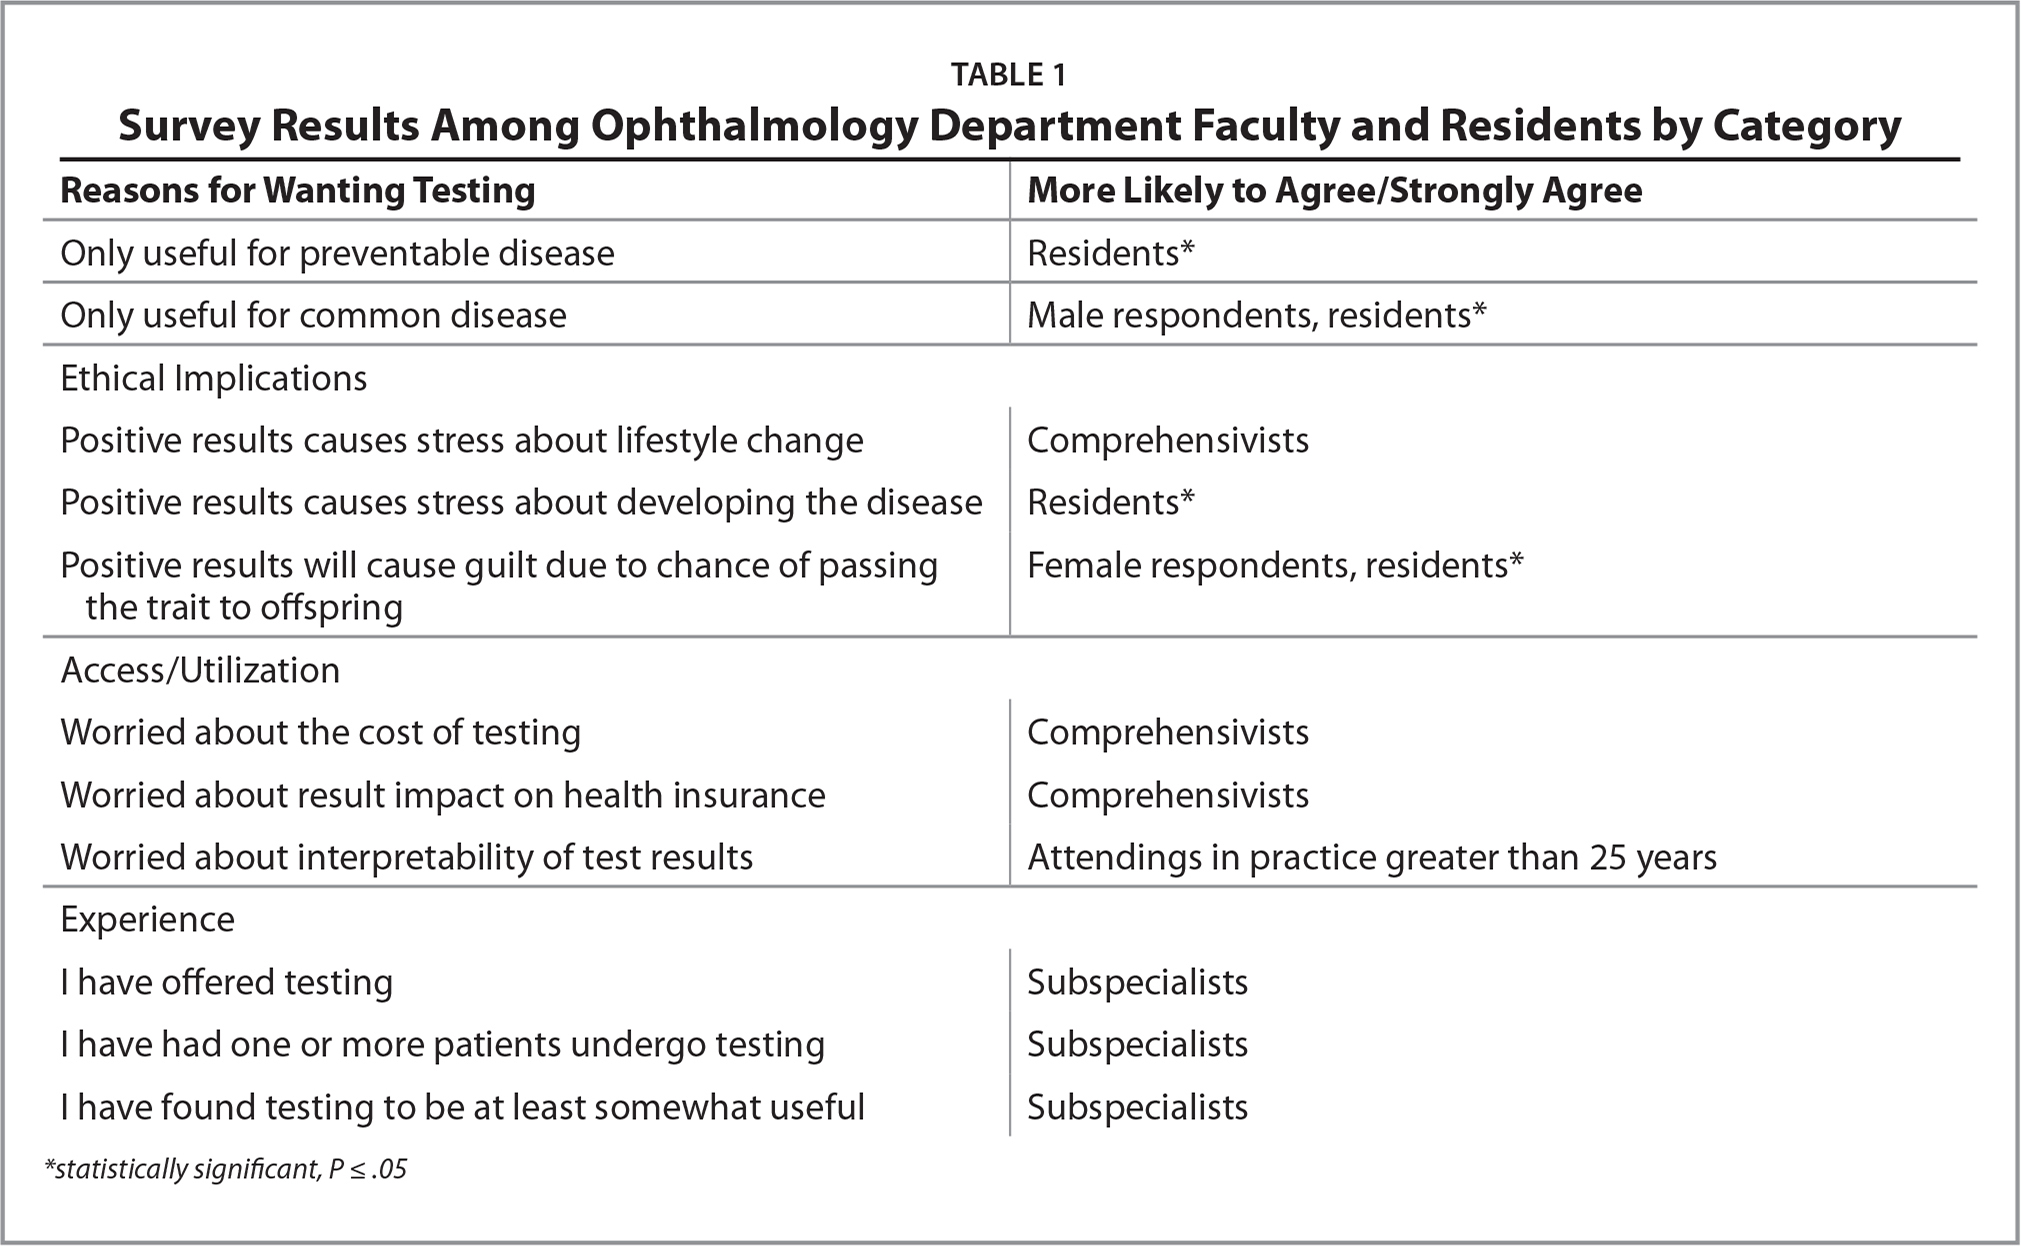 Survey Results Among Ophthalmology Department Faculty and Residents by Category